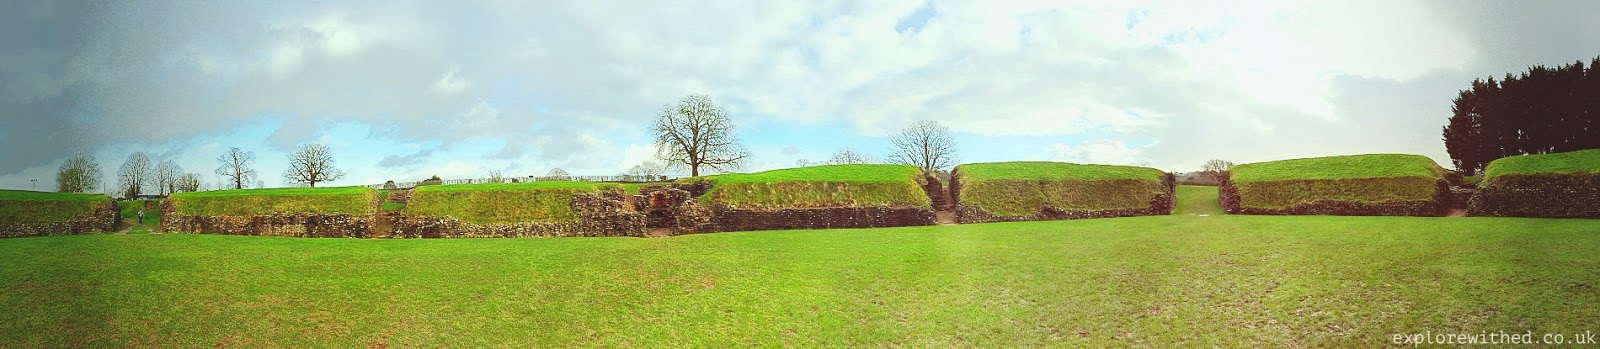 Panoramic view of Caerleon amphitheatre